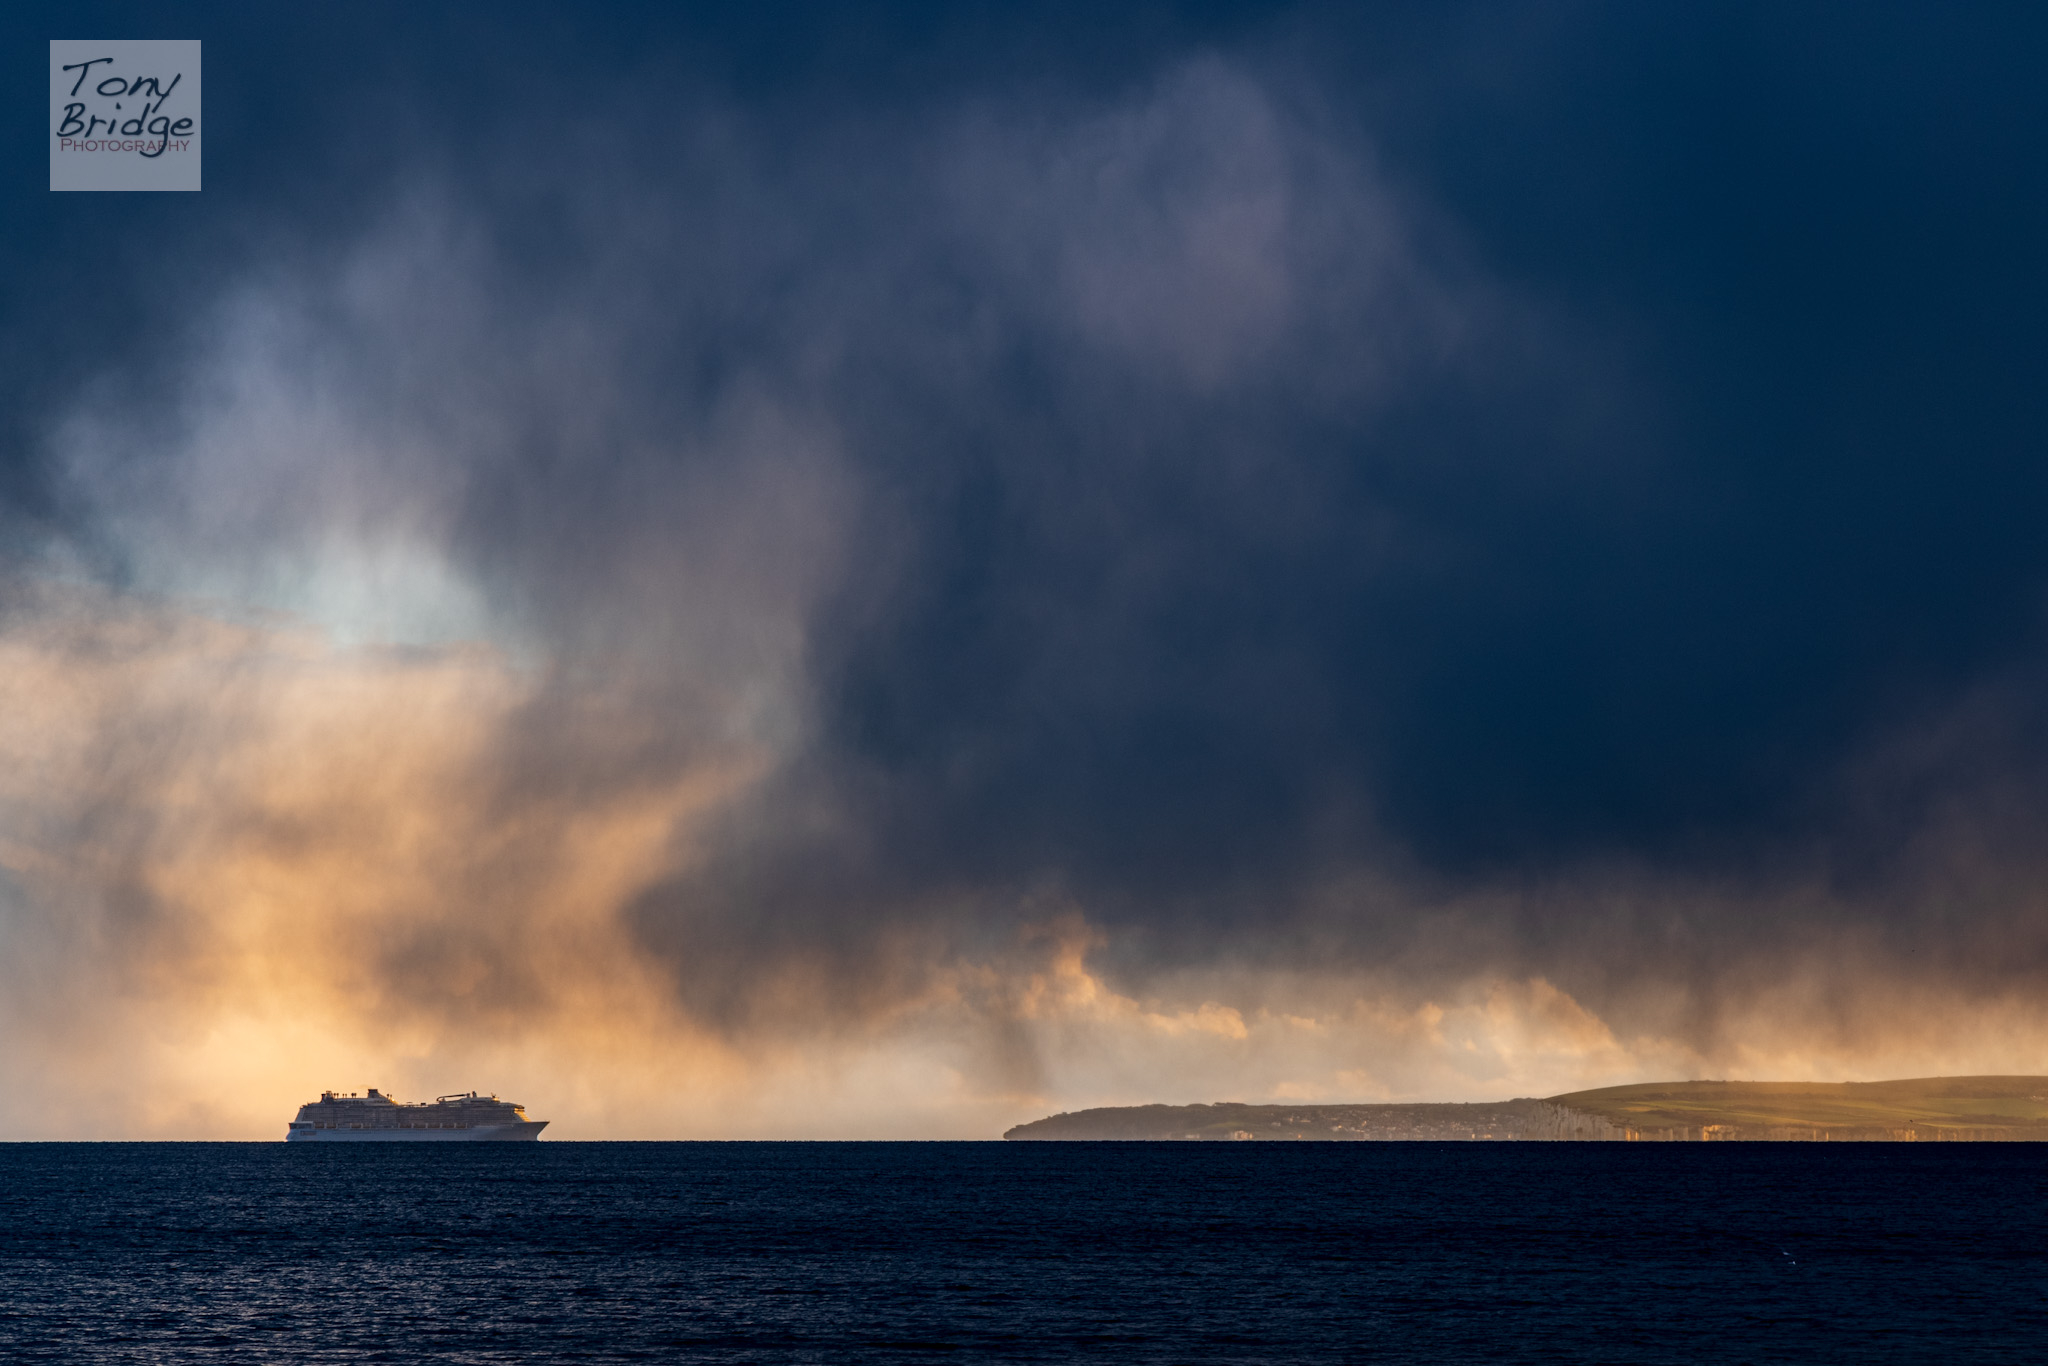 Evening squall over Poole Bay